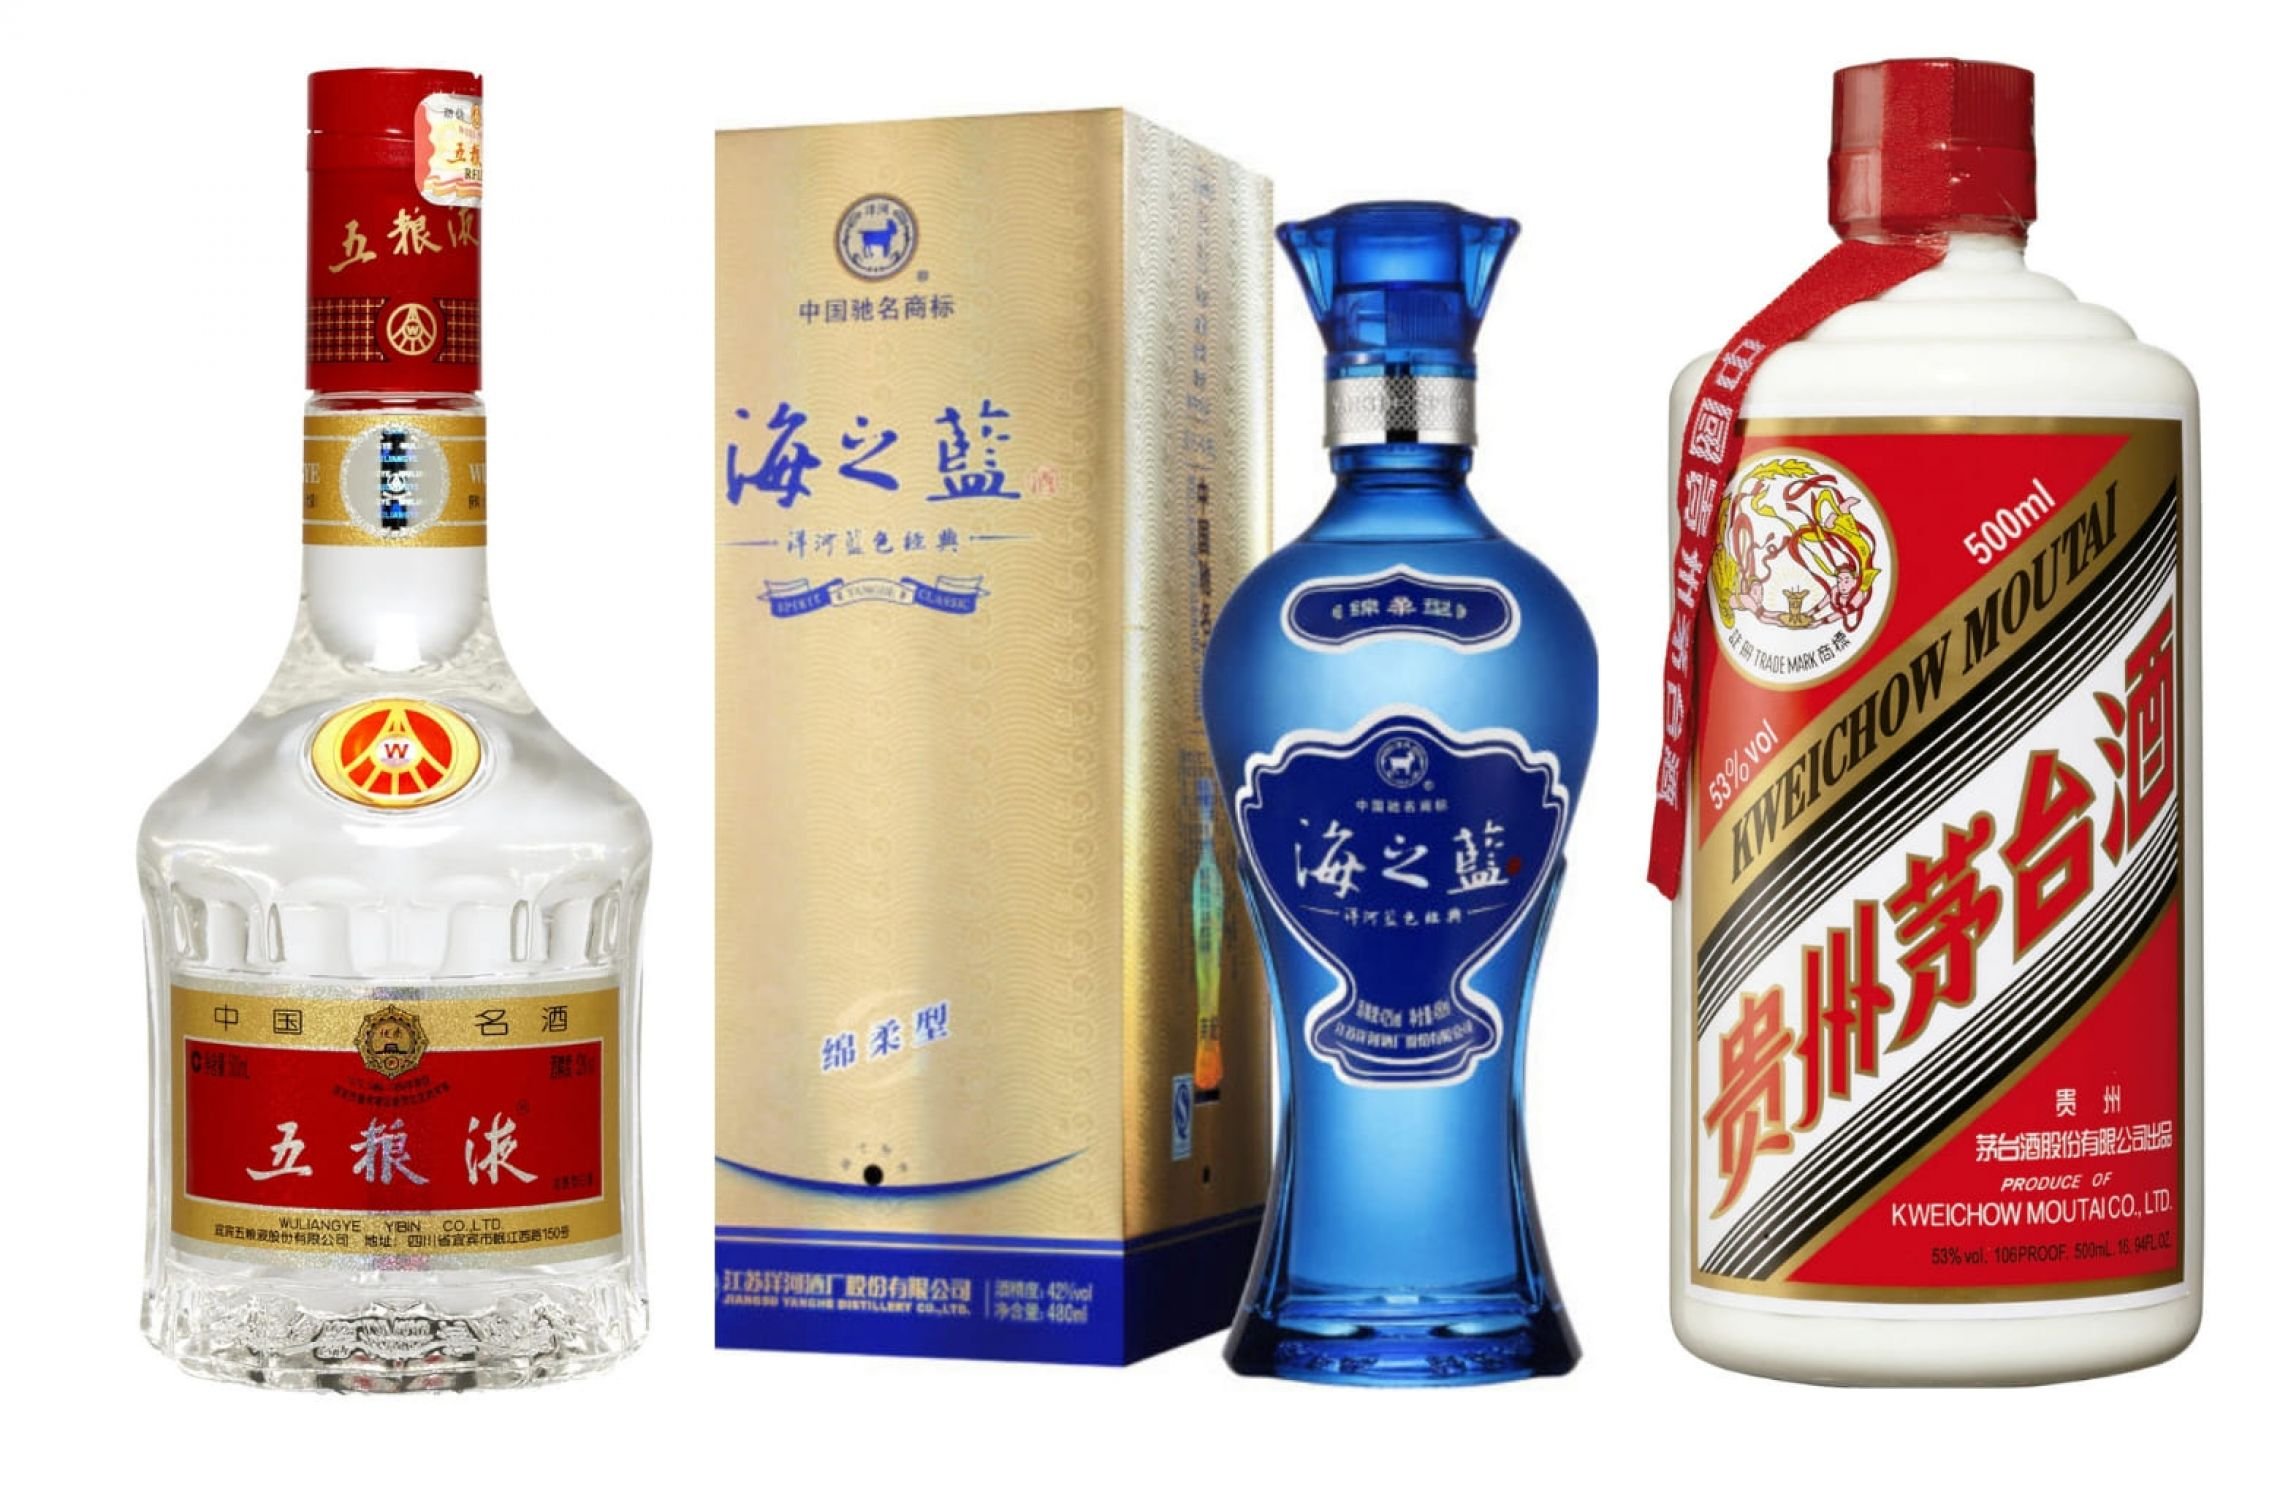 Photo for: China's Top Baijiu Brands Now the Most Valuable in the World